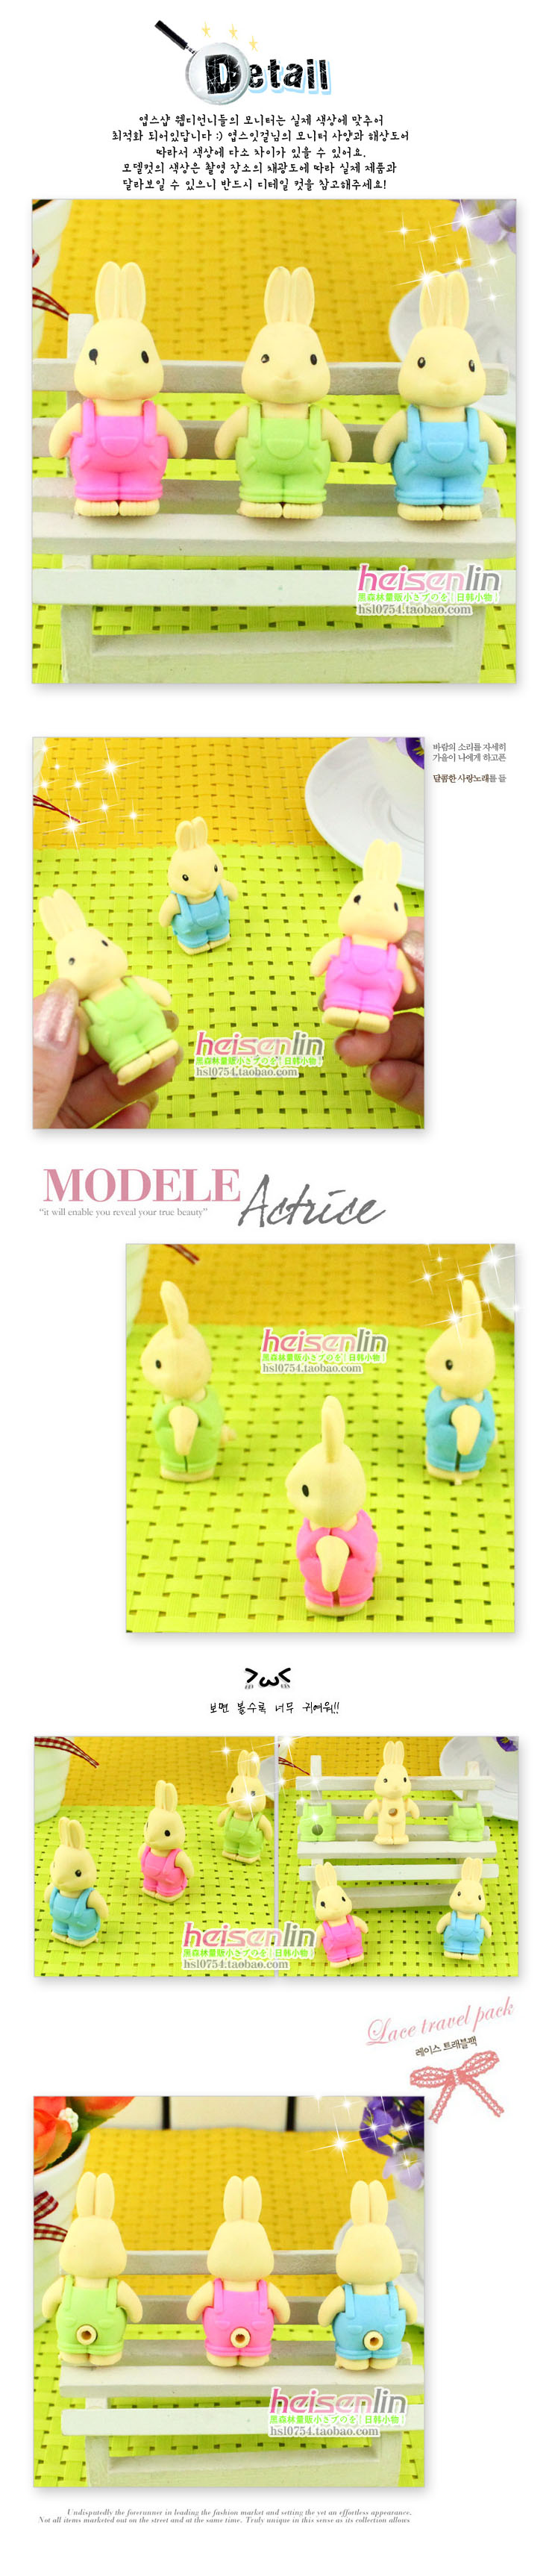 DeLi Cute Stereo Removable Rabbit Style Mini Erasers Soft Erasers Corrections 6pcs D13